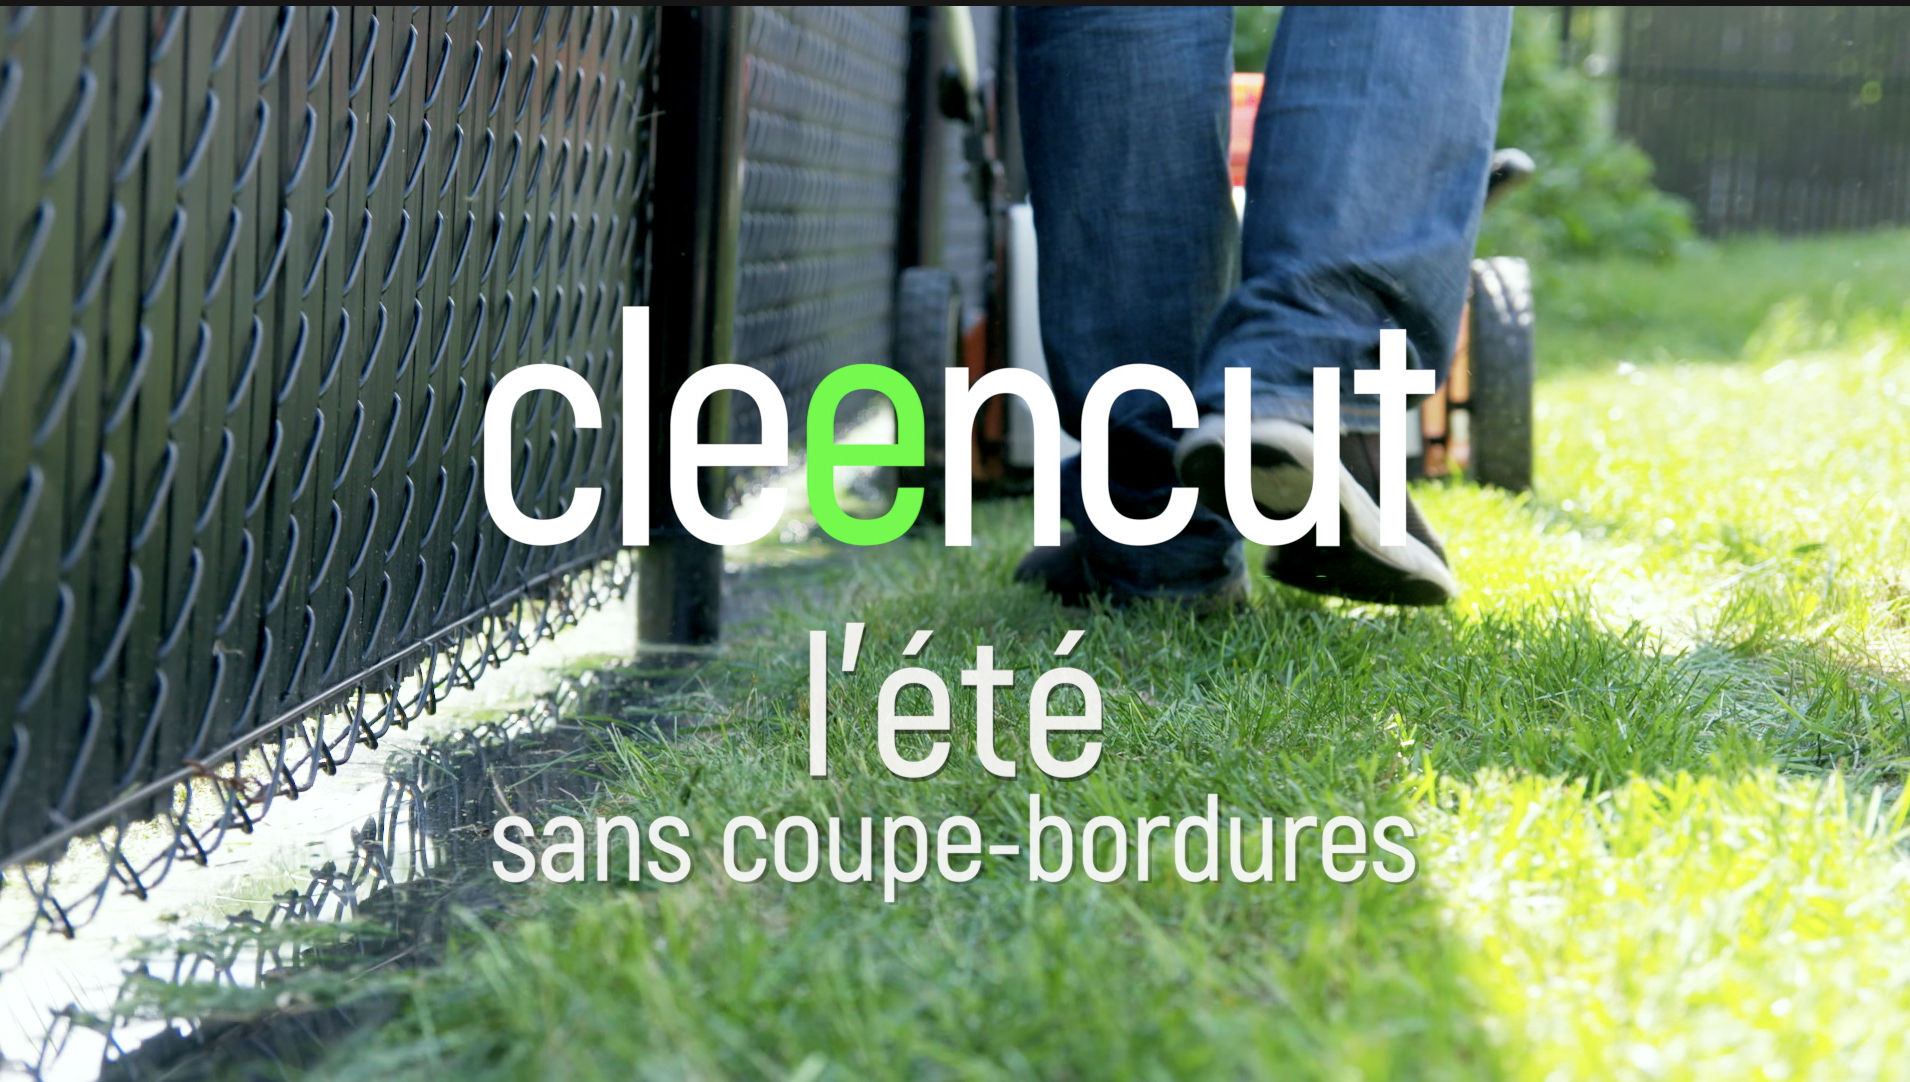 CLEENCUT - ....Campagne publicitaire..Ad campaign....